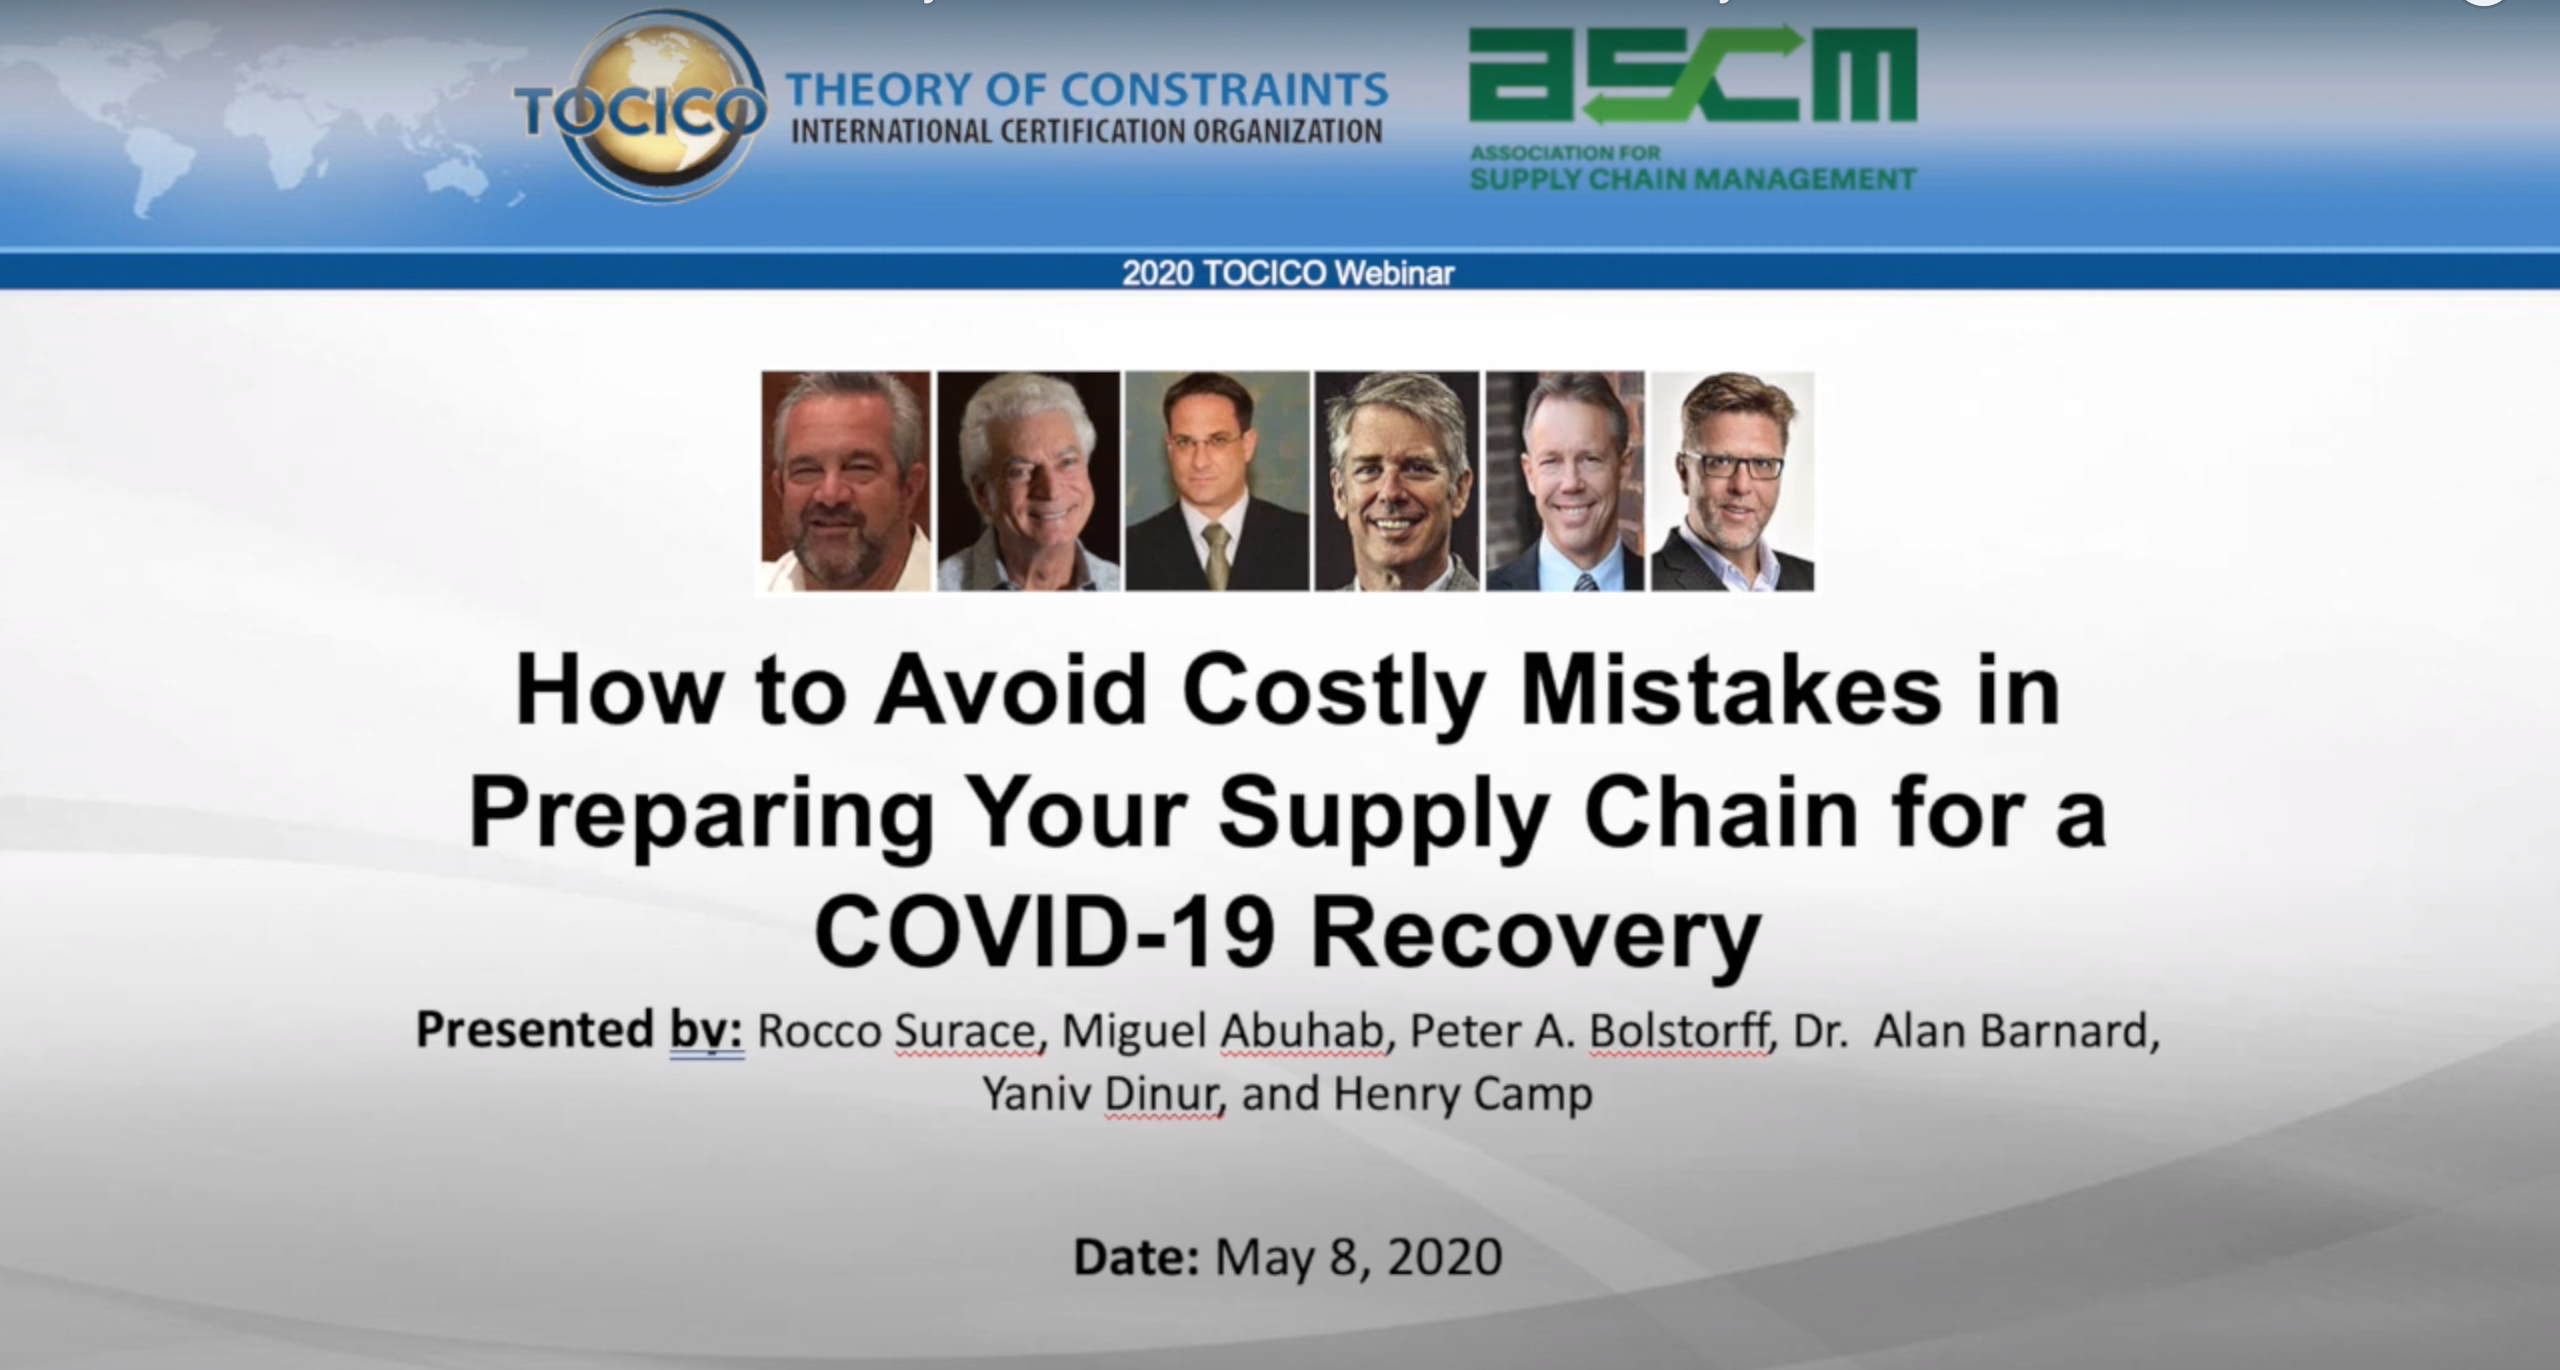 Avoid Costly Mistakes Webinar with TOCICO Experts